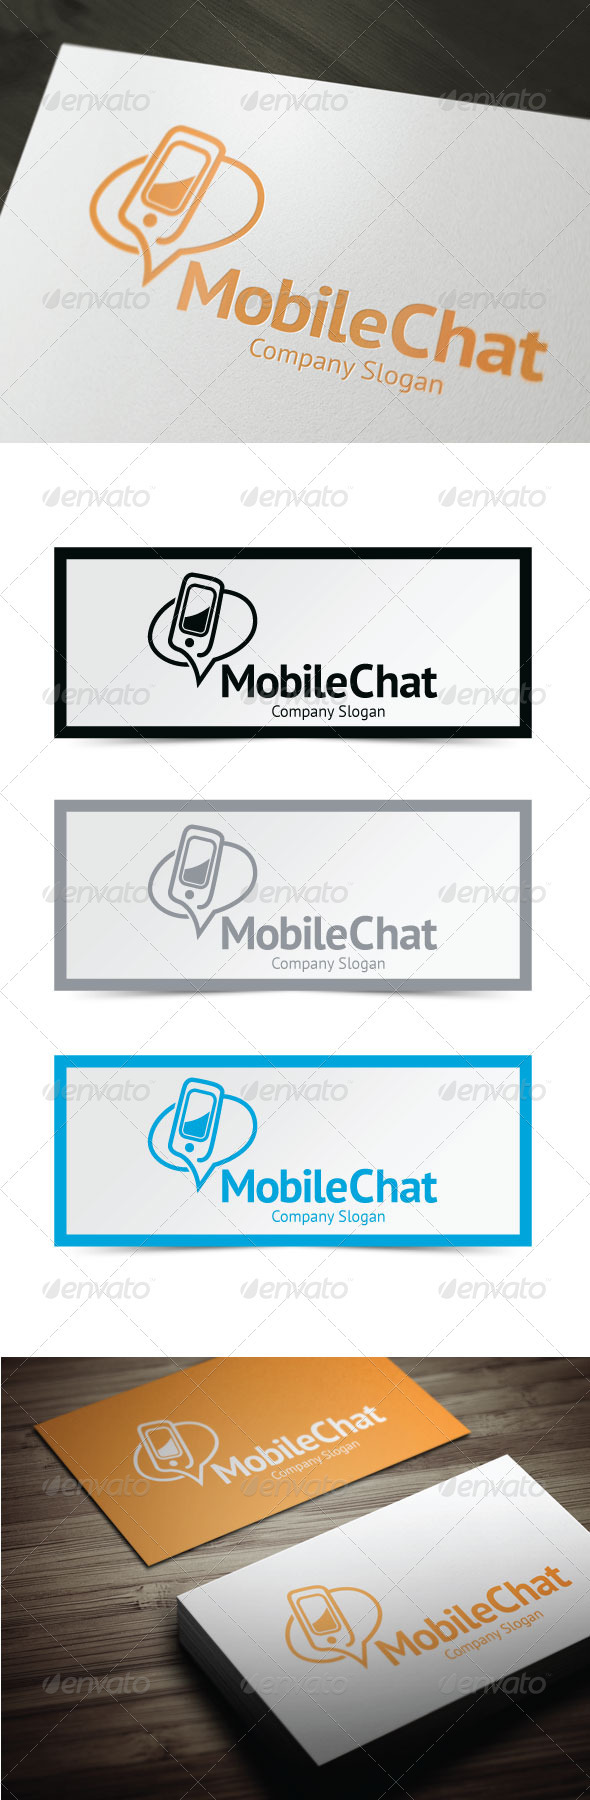 Mobile Chat - Symbols Logo Templates